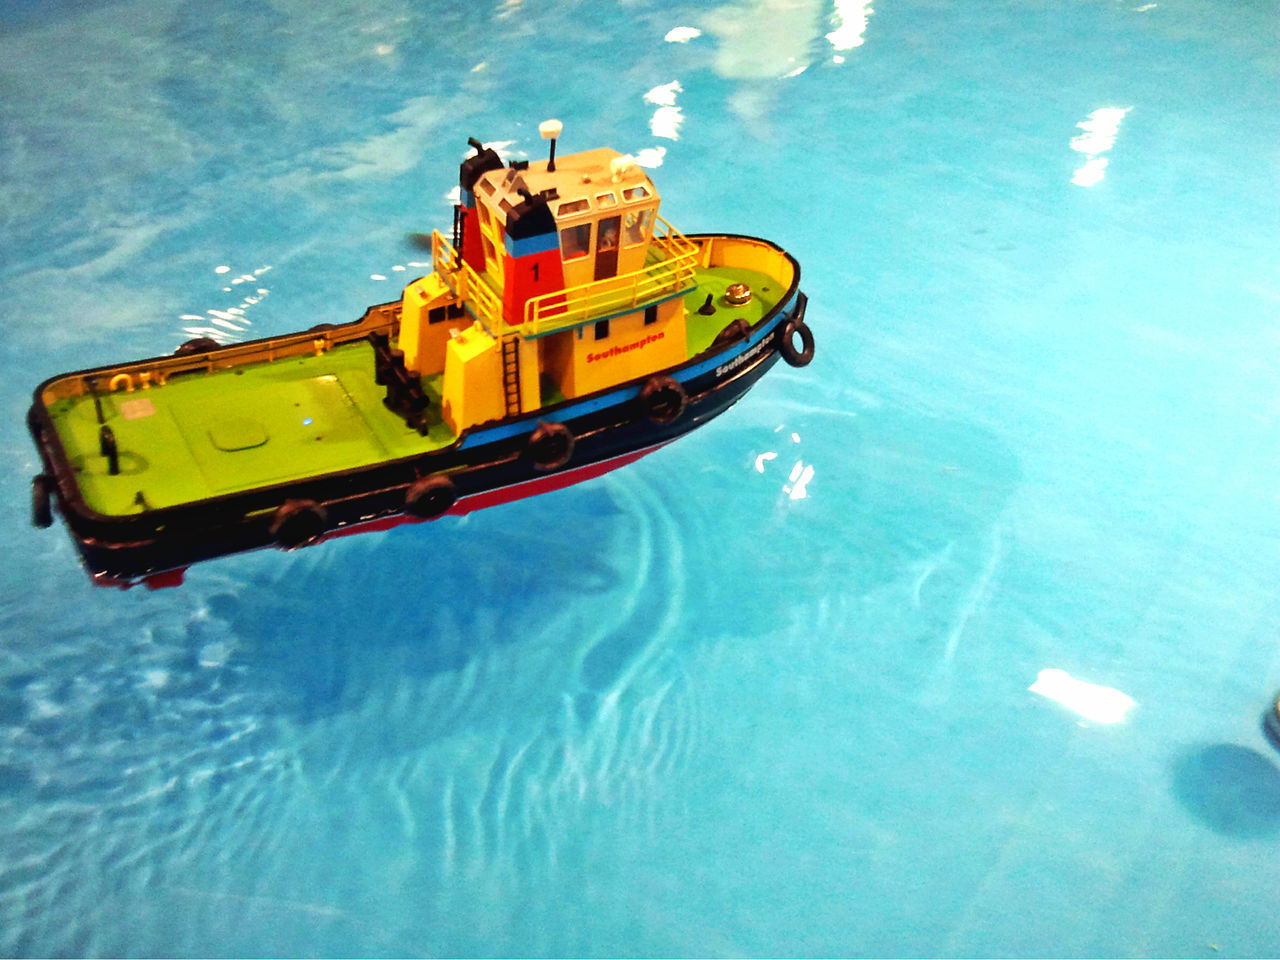 Boat Boat Models Floating On Water High Angle View Nautical Vessel Radio Controlled RC Rc Boat Ship Ship Model Transportation Water Waterfront